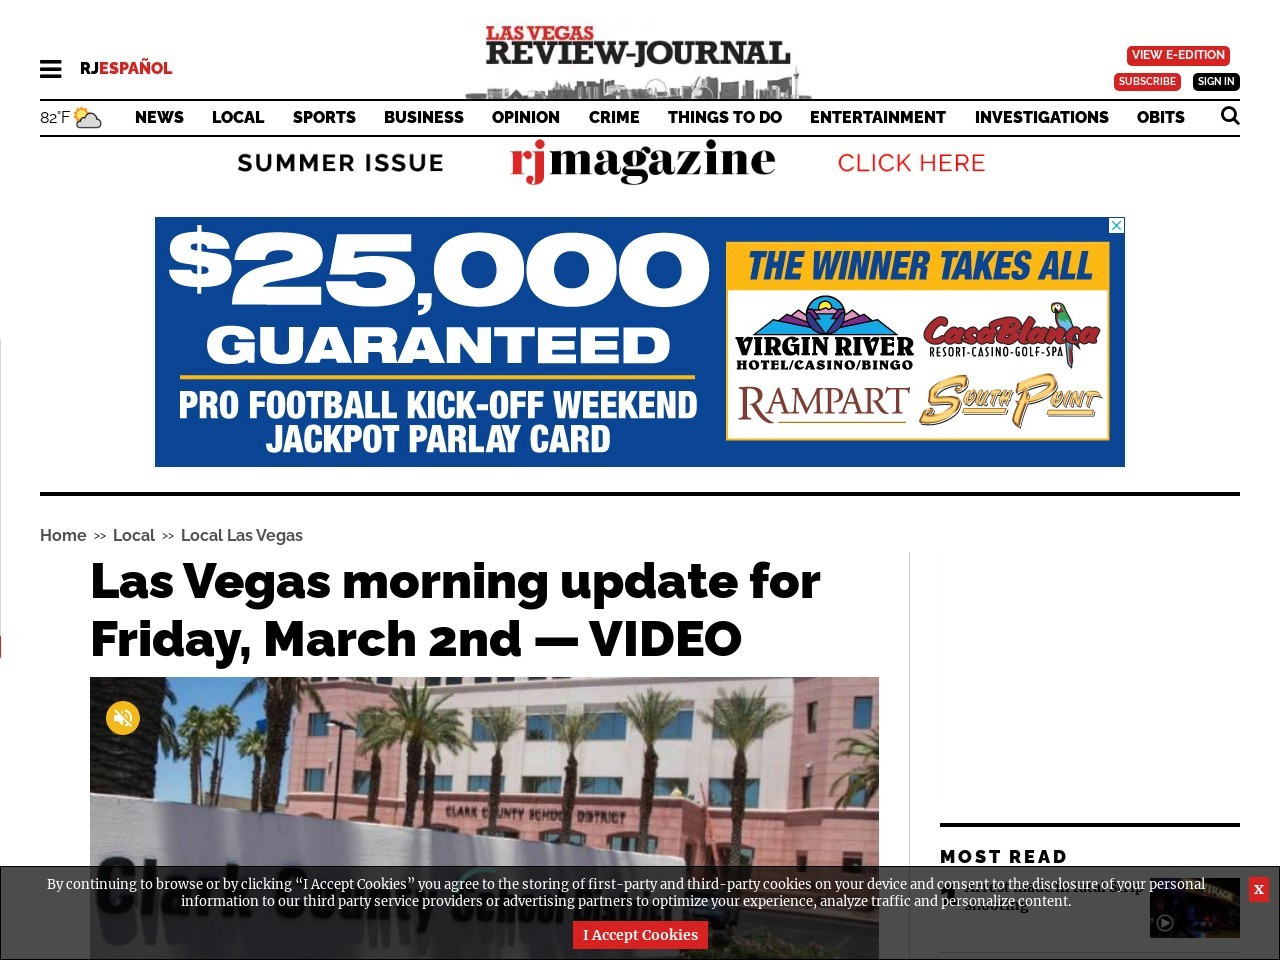 Las Vegas morning udpate for Friday, March 2nd — VIDEO